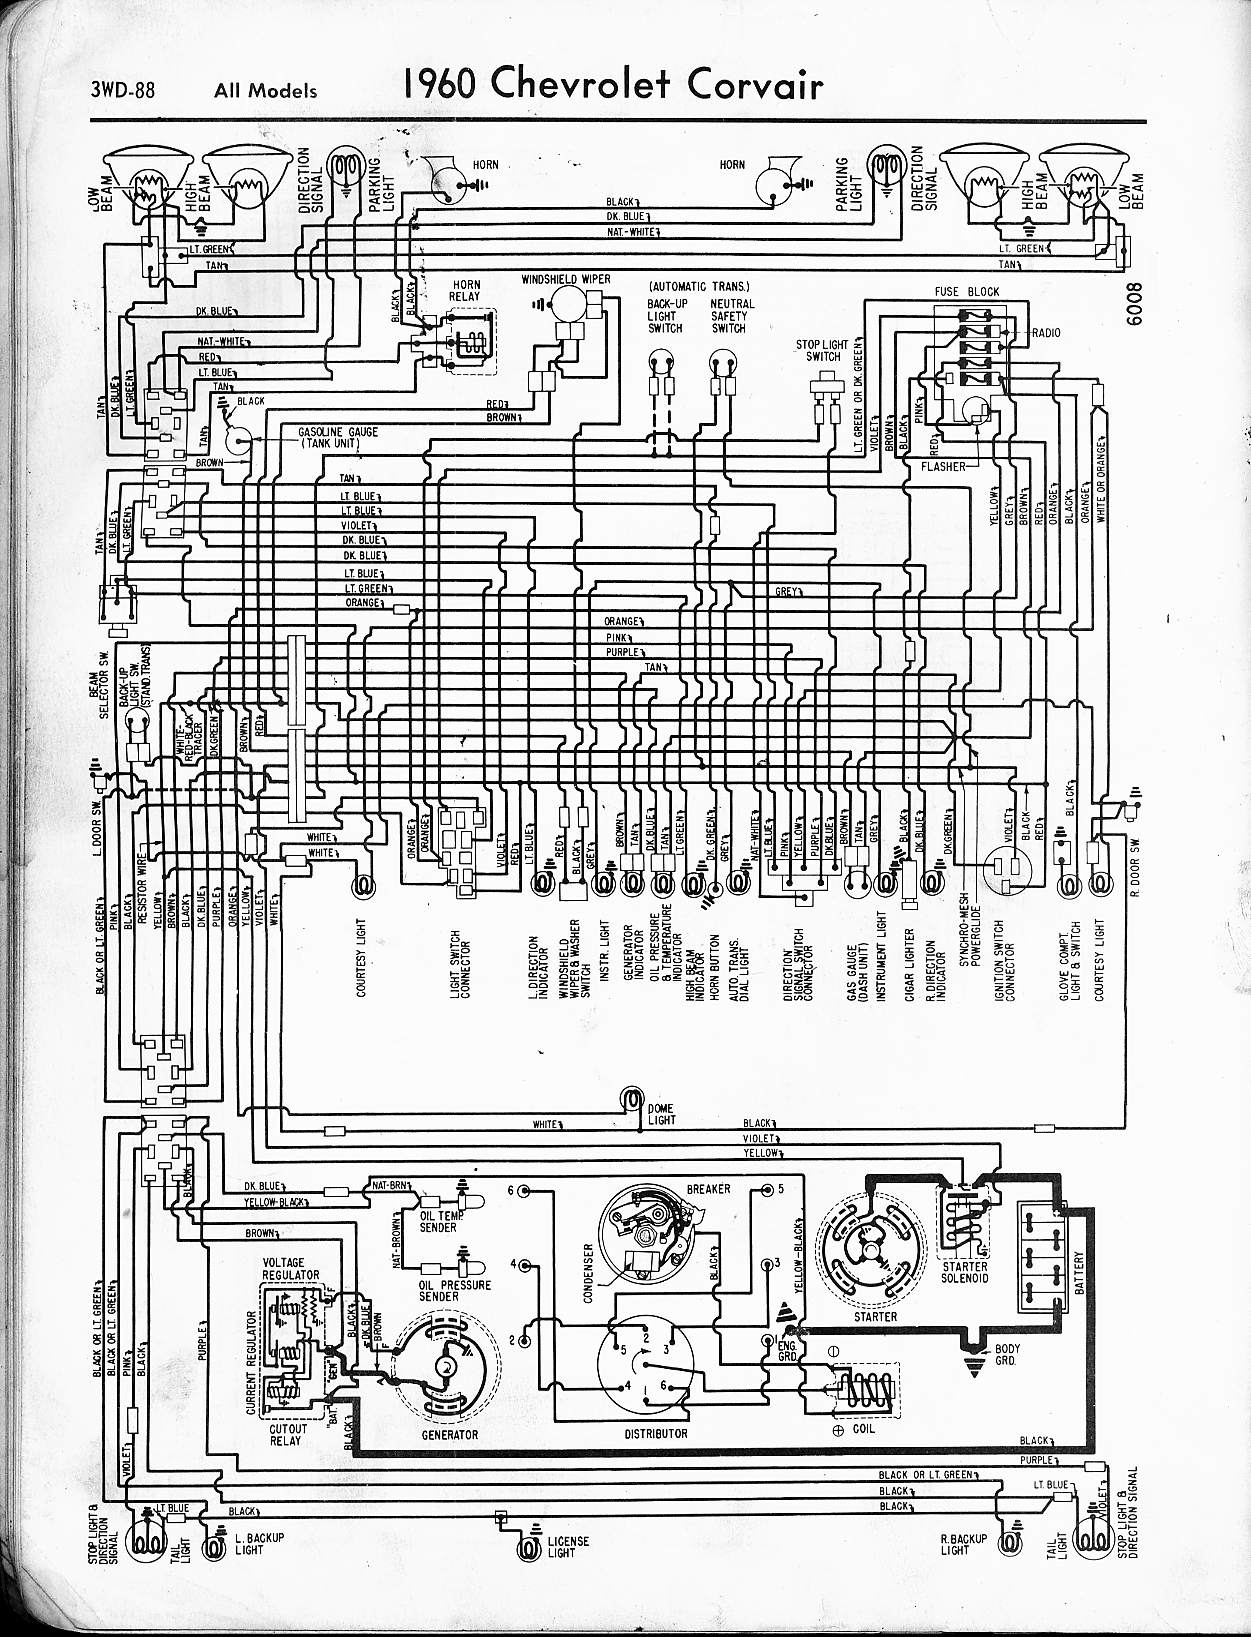 1961 chevy dash wiring diagram free download 1961 chevy starter wiring diagram need complete wiring diagram. alternator w/ built in ...